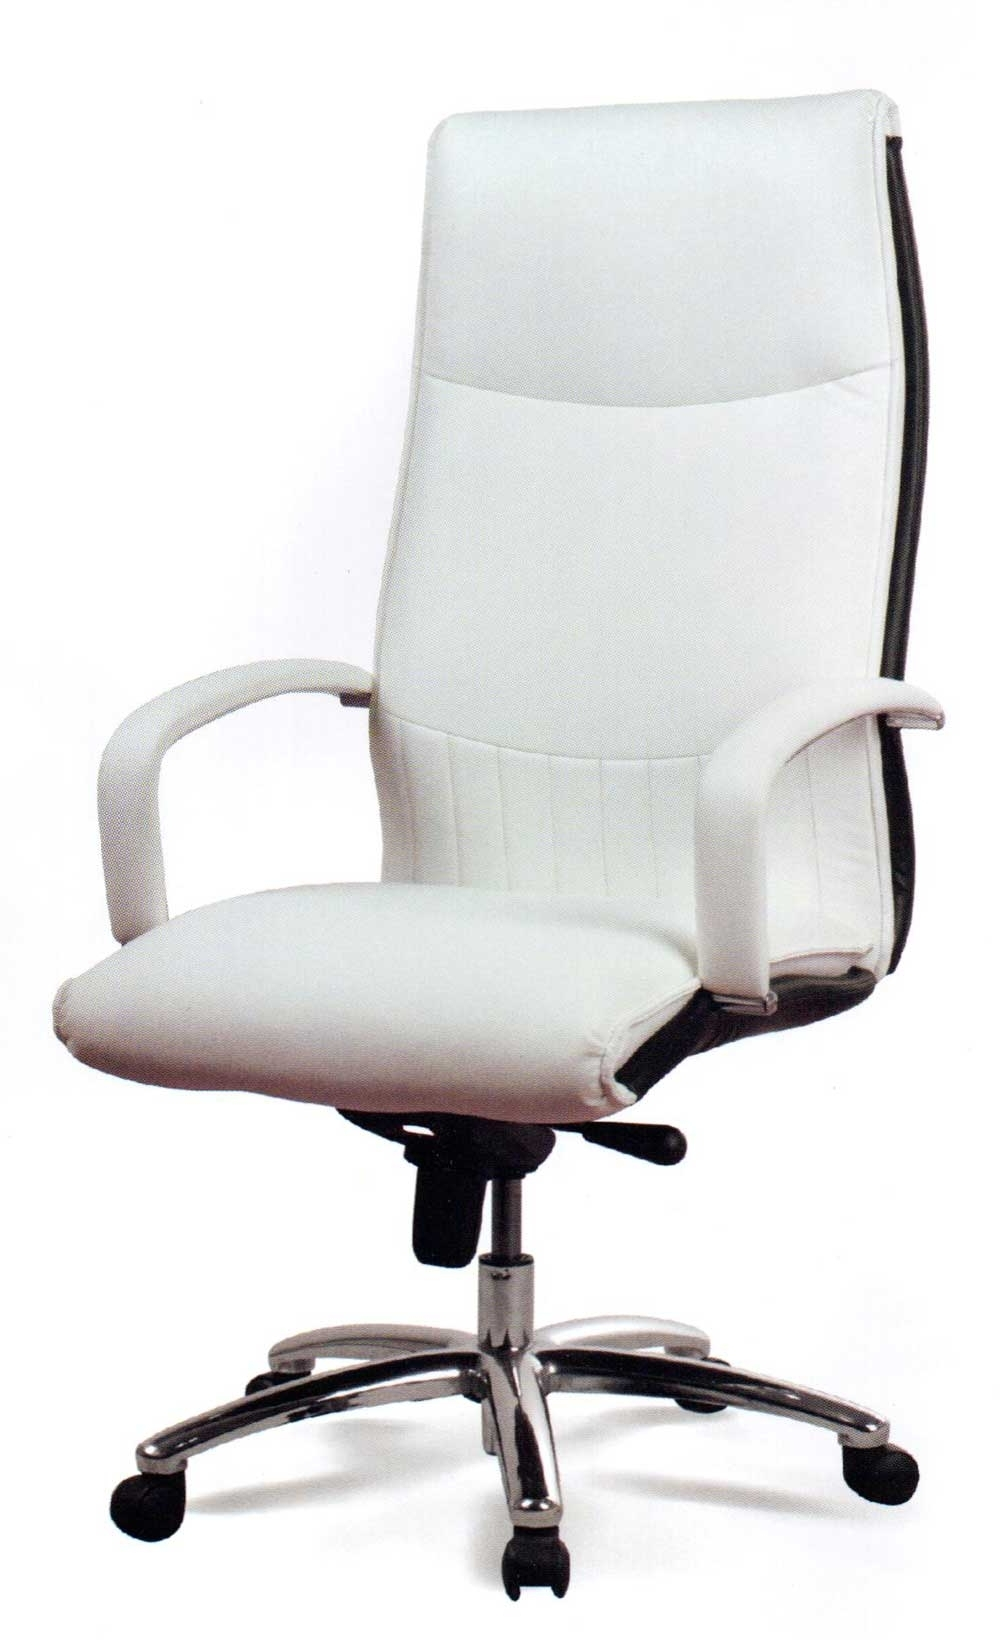 Best And Newest Enjoy Comfort Leather Executive Office Chair – Florist H&g Pertaining To Quality Executive Office Chairs (View 6 of 20)